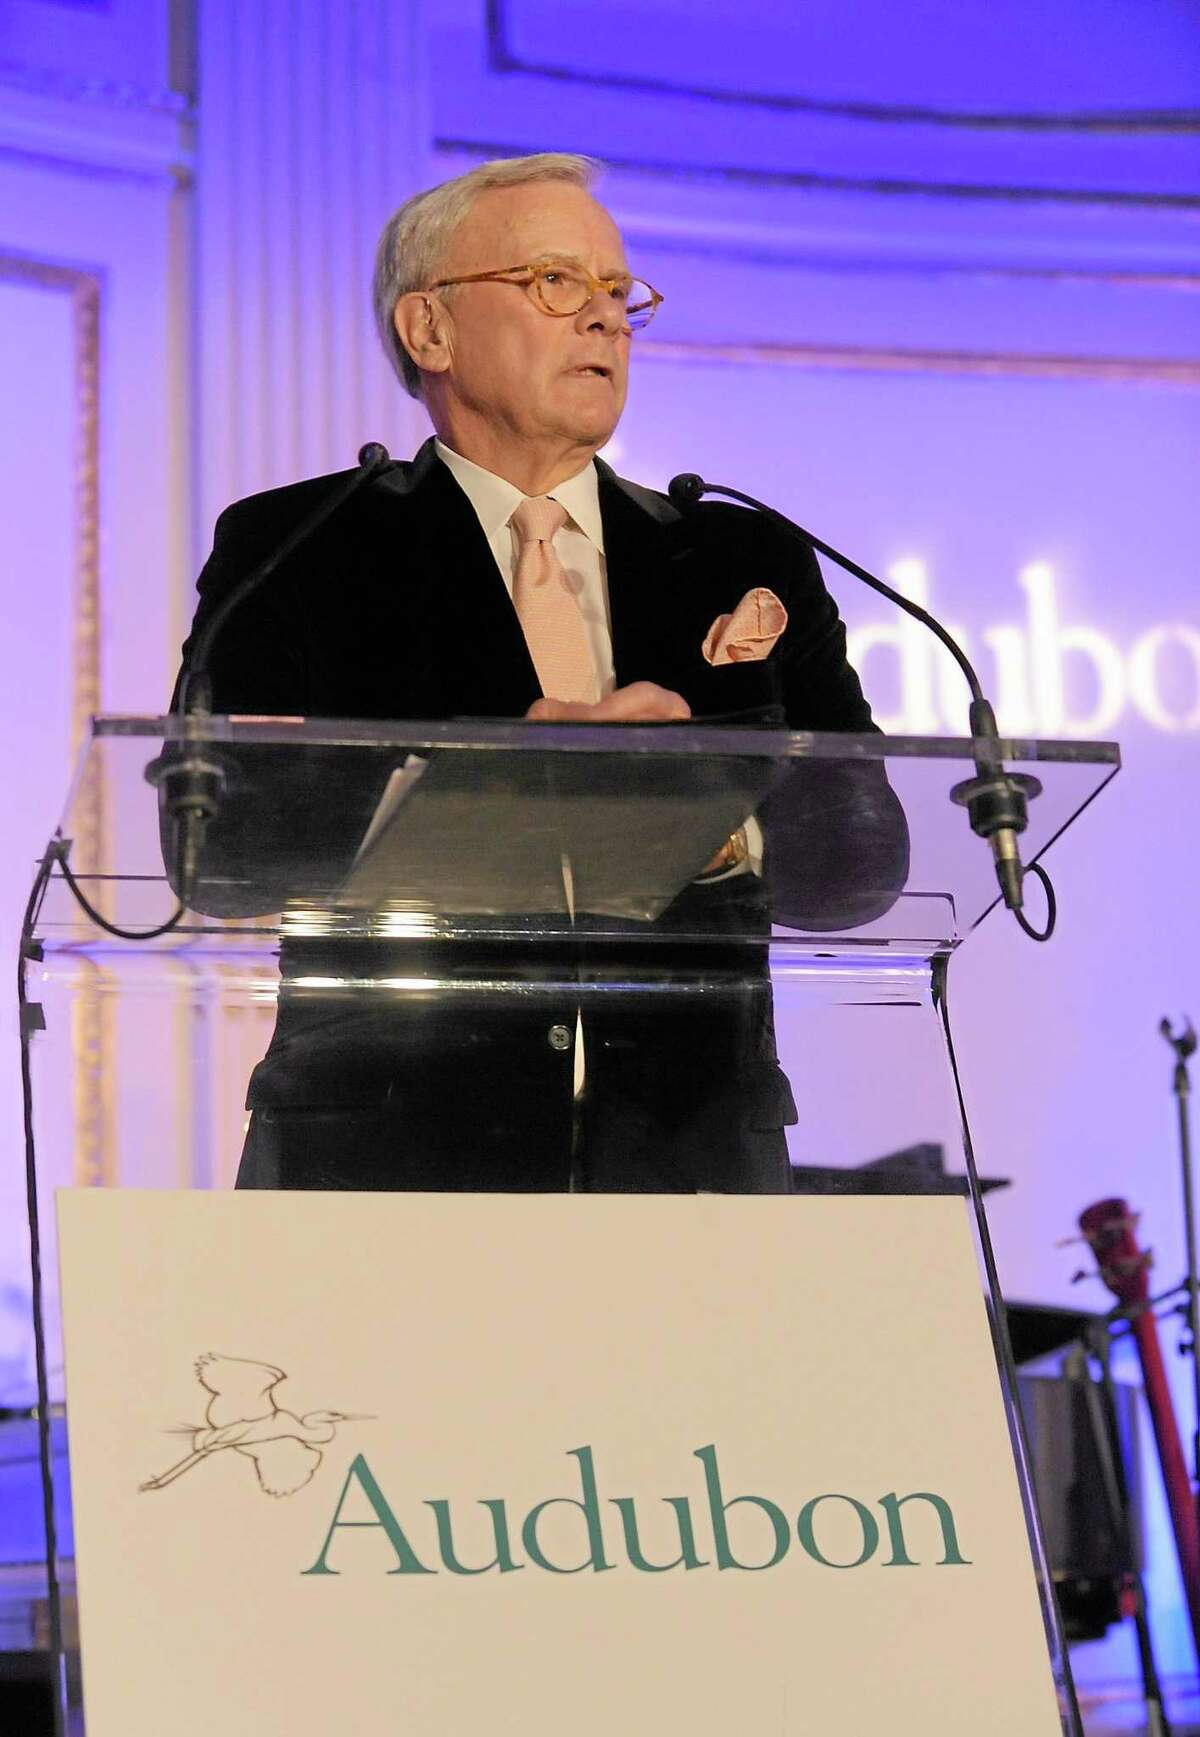 Tom Brokaw hosts The National Audubon Society's first gala to jointly award the Audubon Medal and the inaugural Dan W. Lufkin Prize for Environmental Leadership, Thursday, Jan. 17, 2013, in New York. (Photo by Diane Bondareff/Invision for The National Audubon Society/AP Images)